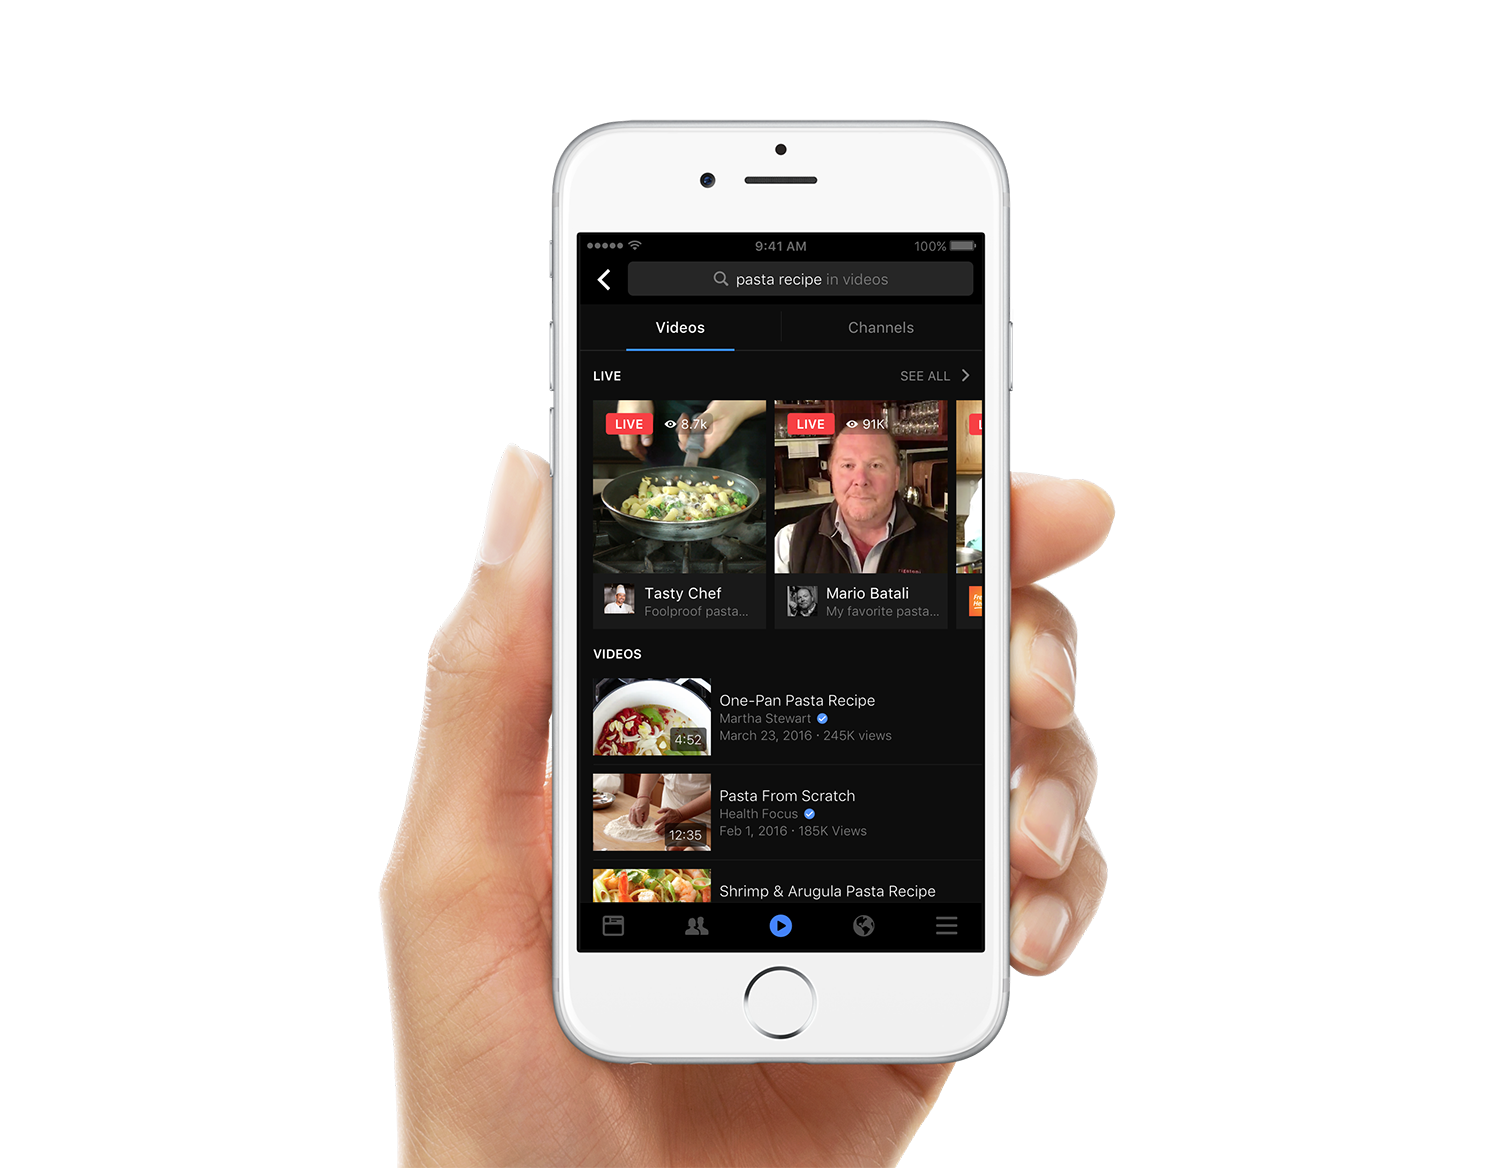 Facebook Video Search on Mobile